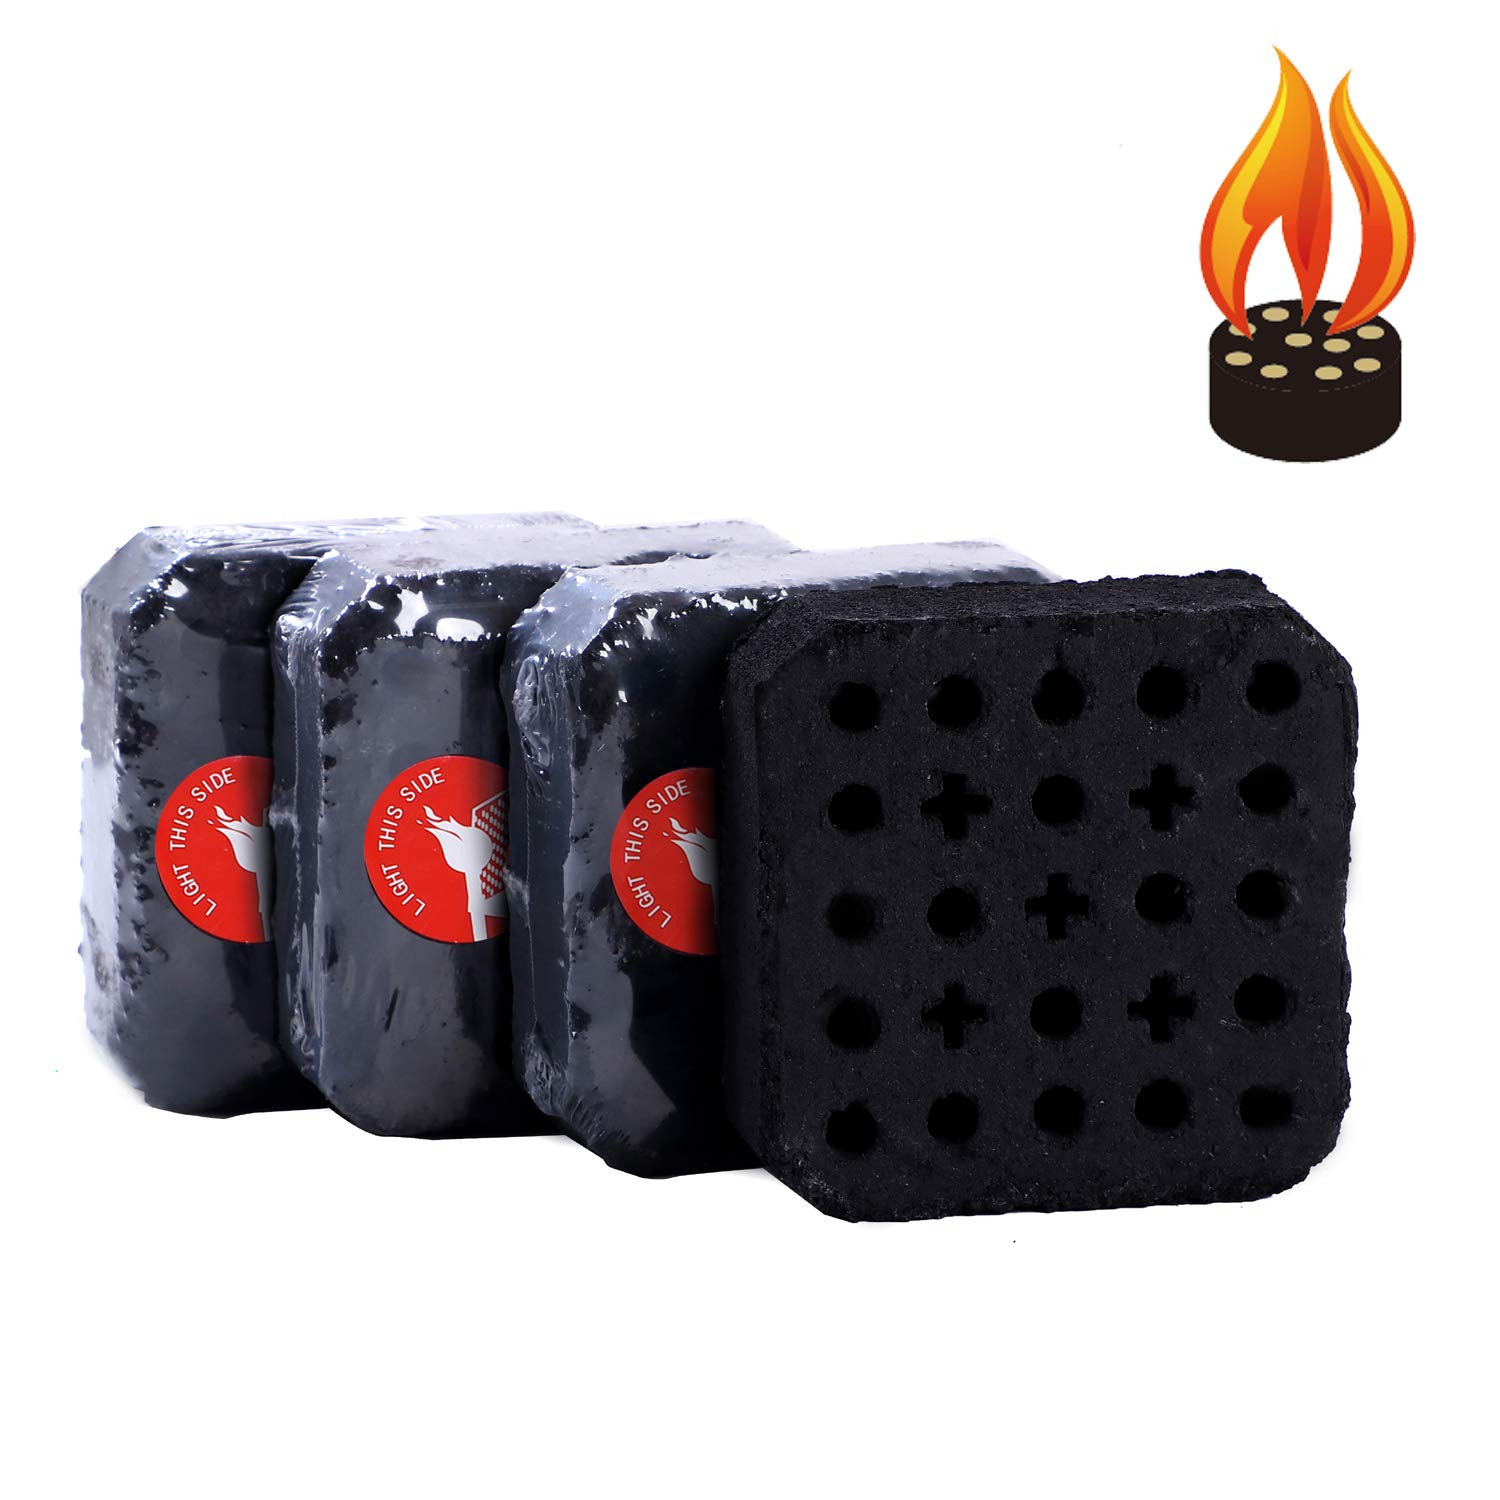 MUXI 4PCS Portable Grilling Charcoal Briquettes, 3 Seconds to Light, Sustainable Burning for 120 Mins, Easy Light Charcoal for Grill, Make BBQ Easy for Everyone, 5.2-Pound/Box by MUXI BBQ